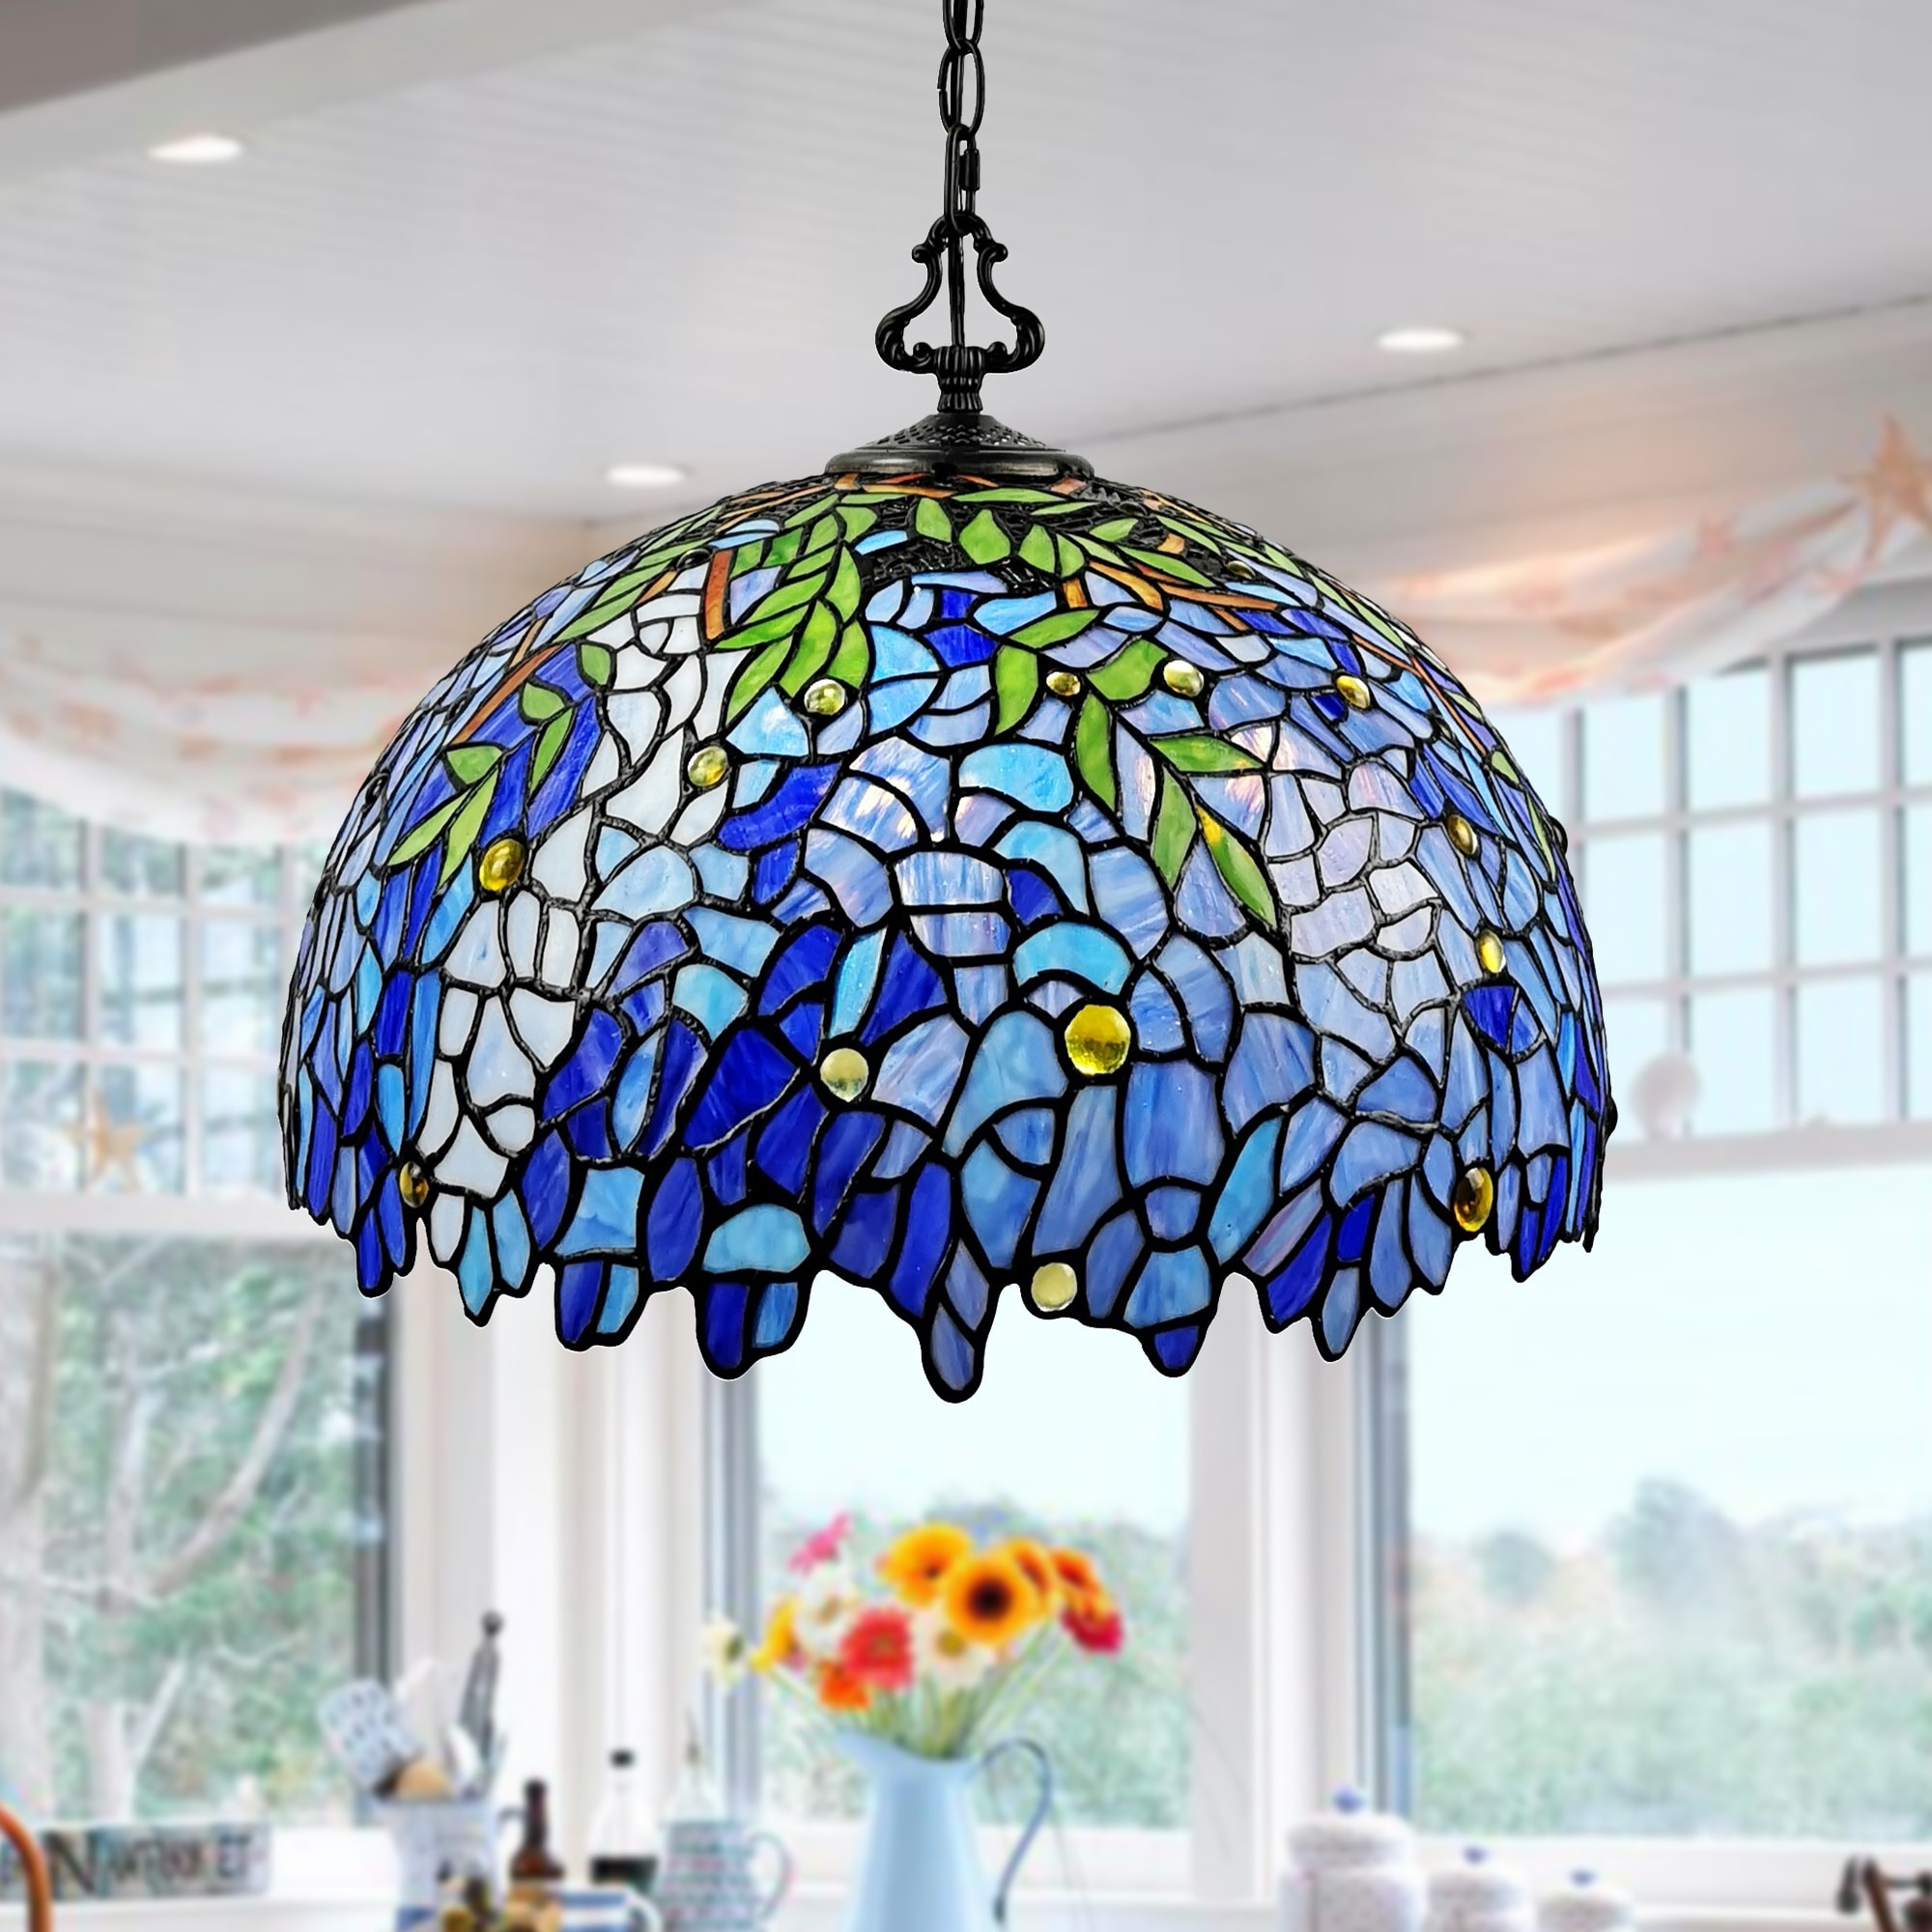 Rikkie 2 Light Wisteria Design Stained Glass Shade Tiffany Style Pendant Lamp Overstock 31640545